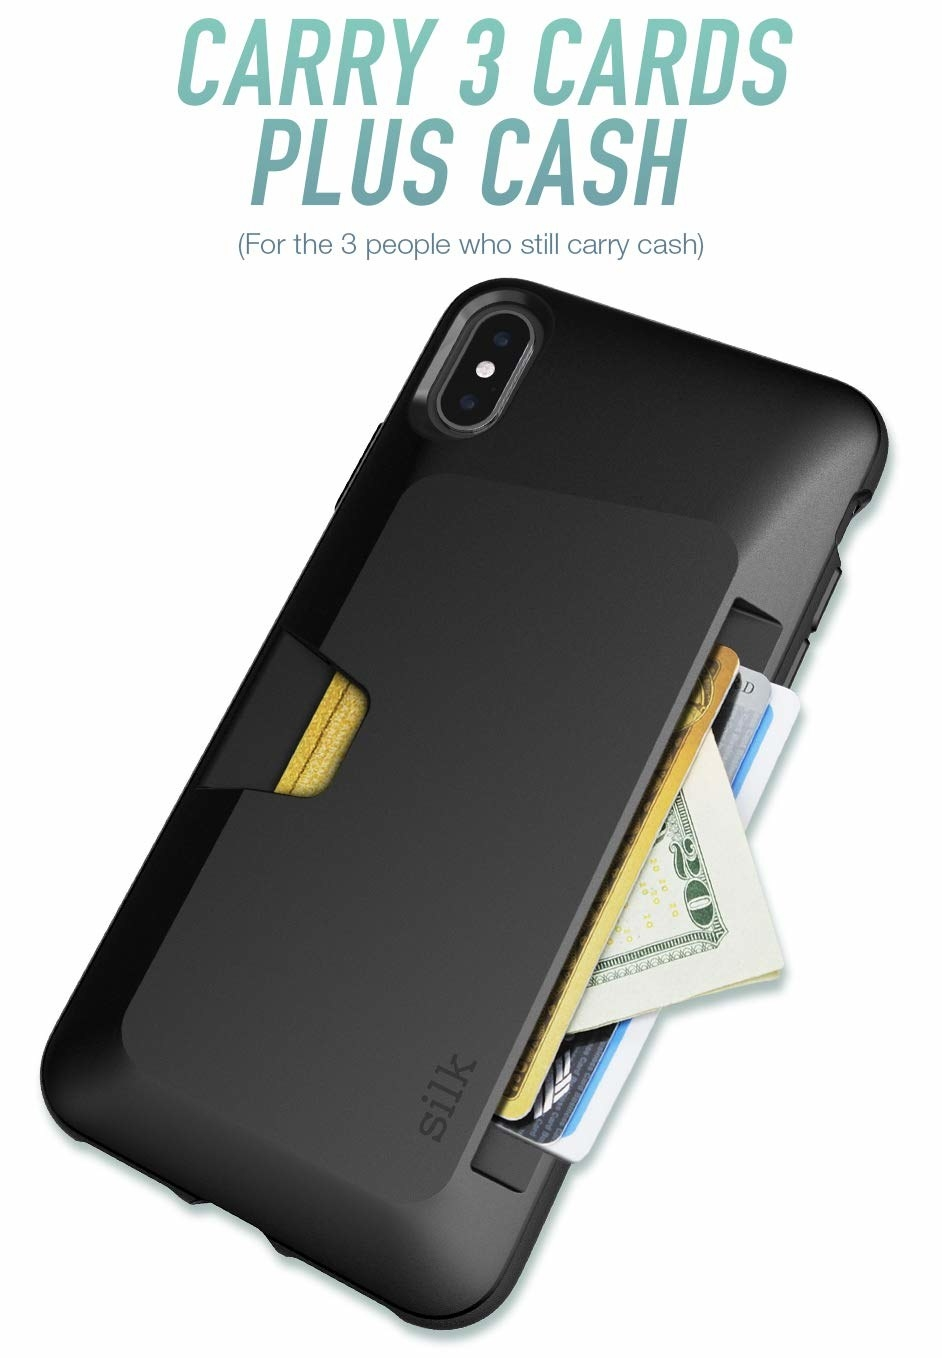 """The black hard case with a slot for cards and cash and the text """"carry 3 cards plus cash (for the 3 people who still carry cash}"""""""